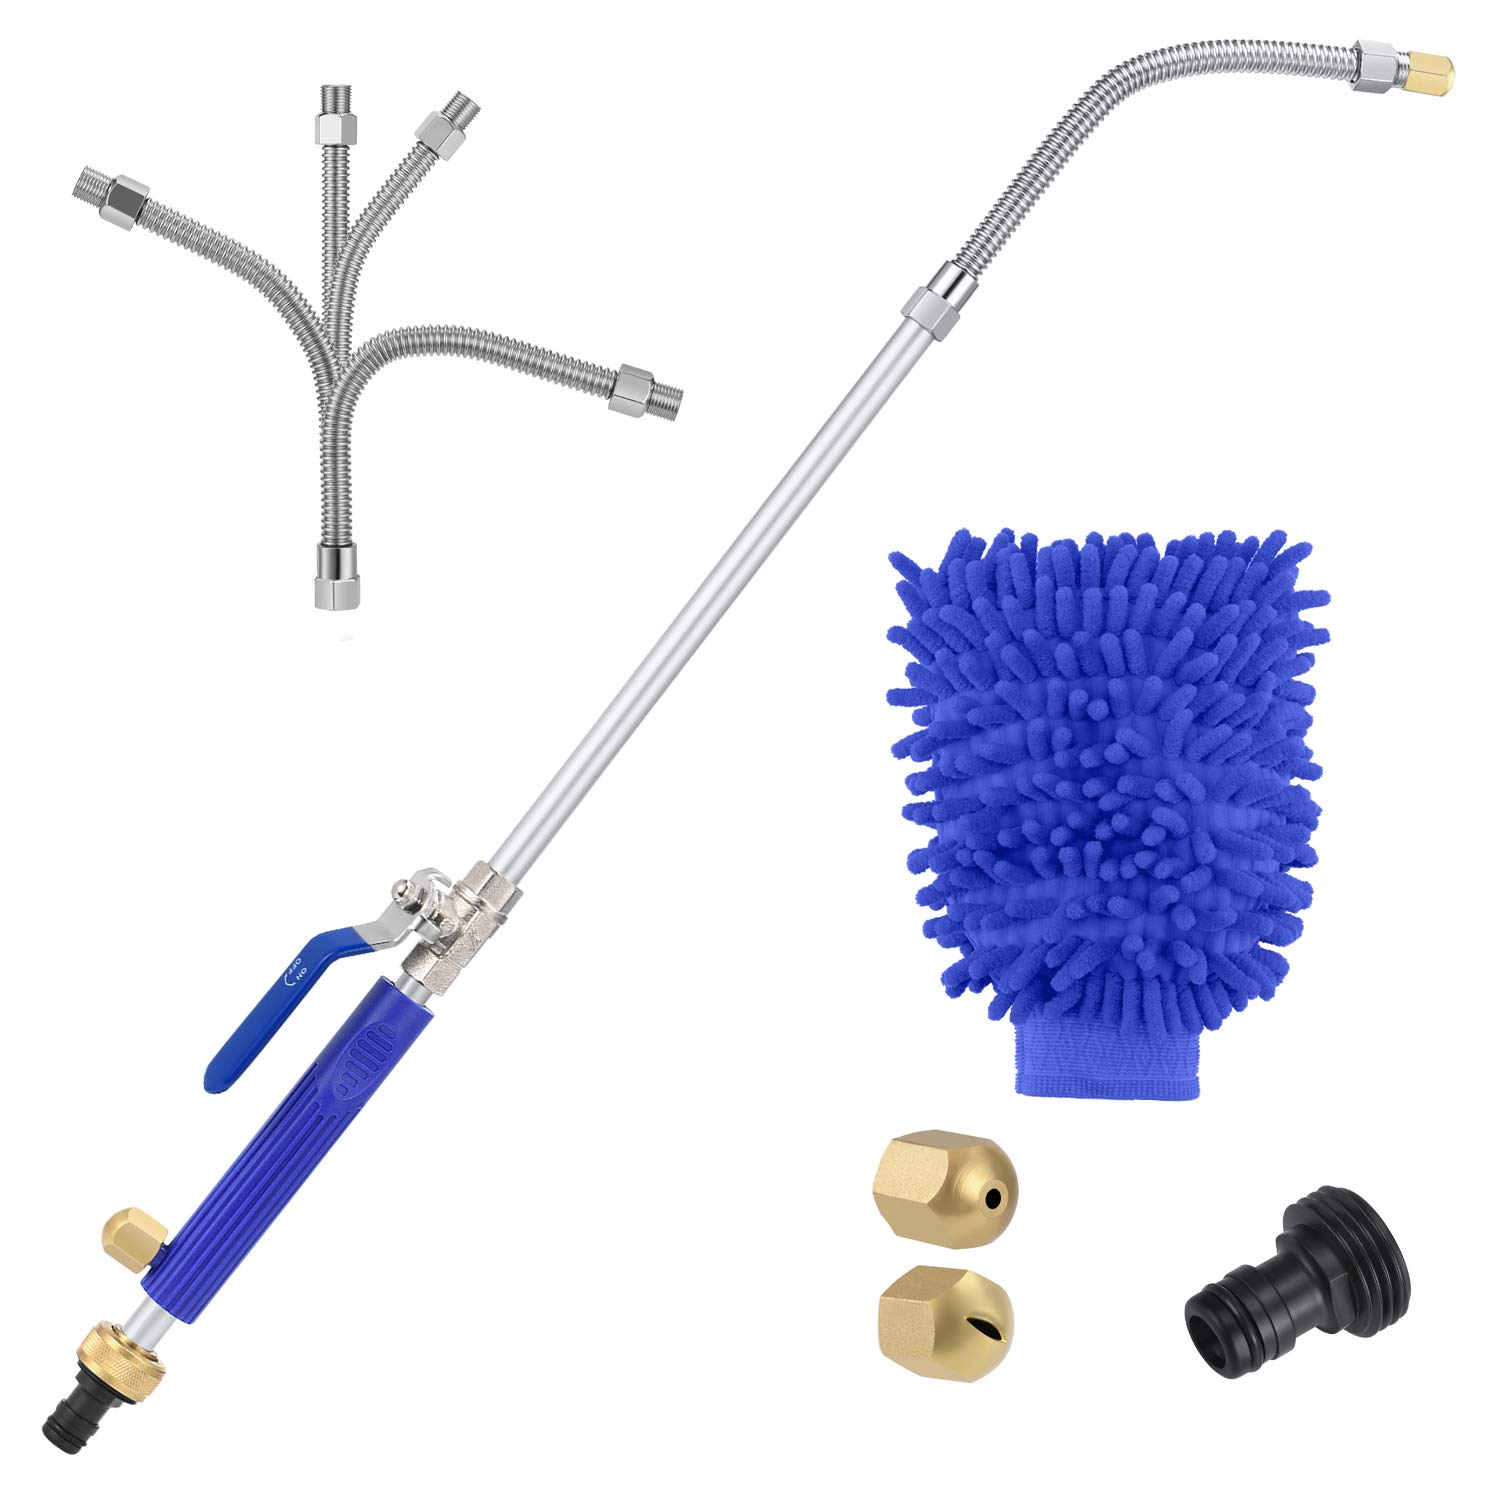 One Sight Hydro Jet Power Washer Wand High Pressure Flexible Garden Sprayer Magic Power Water Hose Nozzle, Watering Jet Cleaner for Car Window Washing, a Free Scrubbing Mitt, 2 Tips